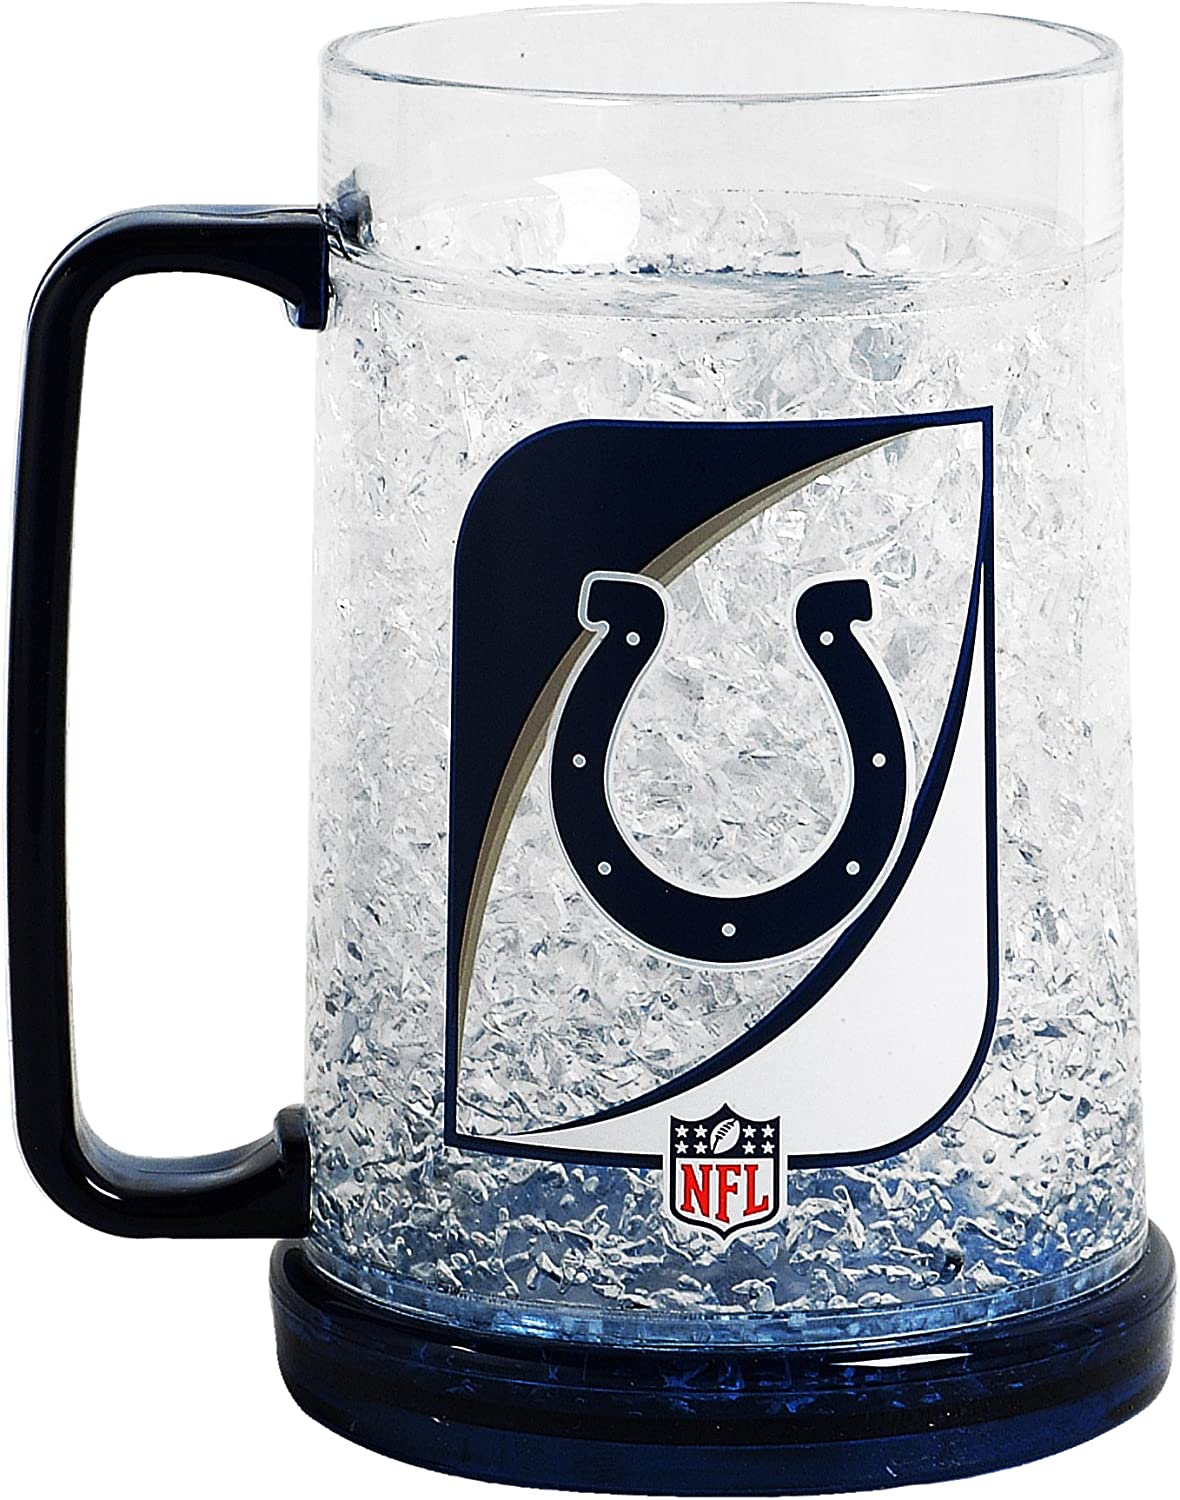 NFL Indianapolis Colts 16-Ounce Crystal Freezer Mug